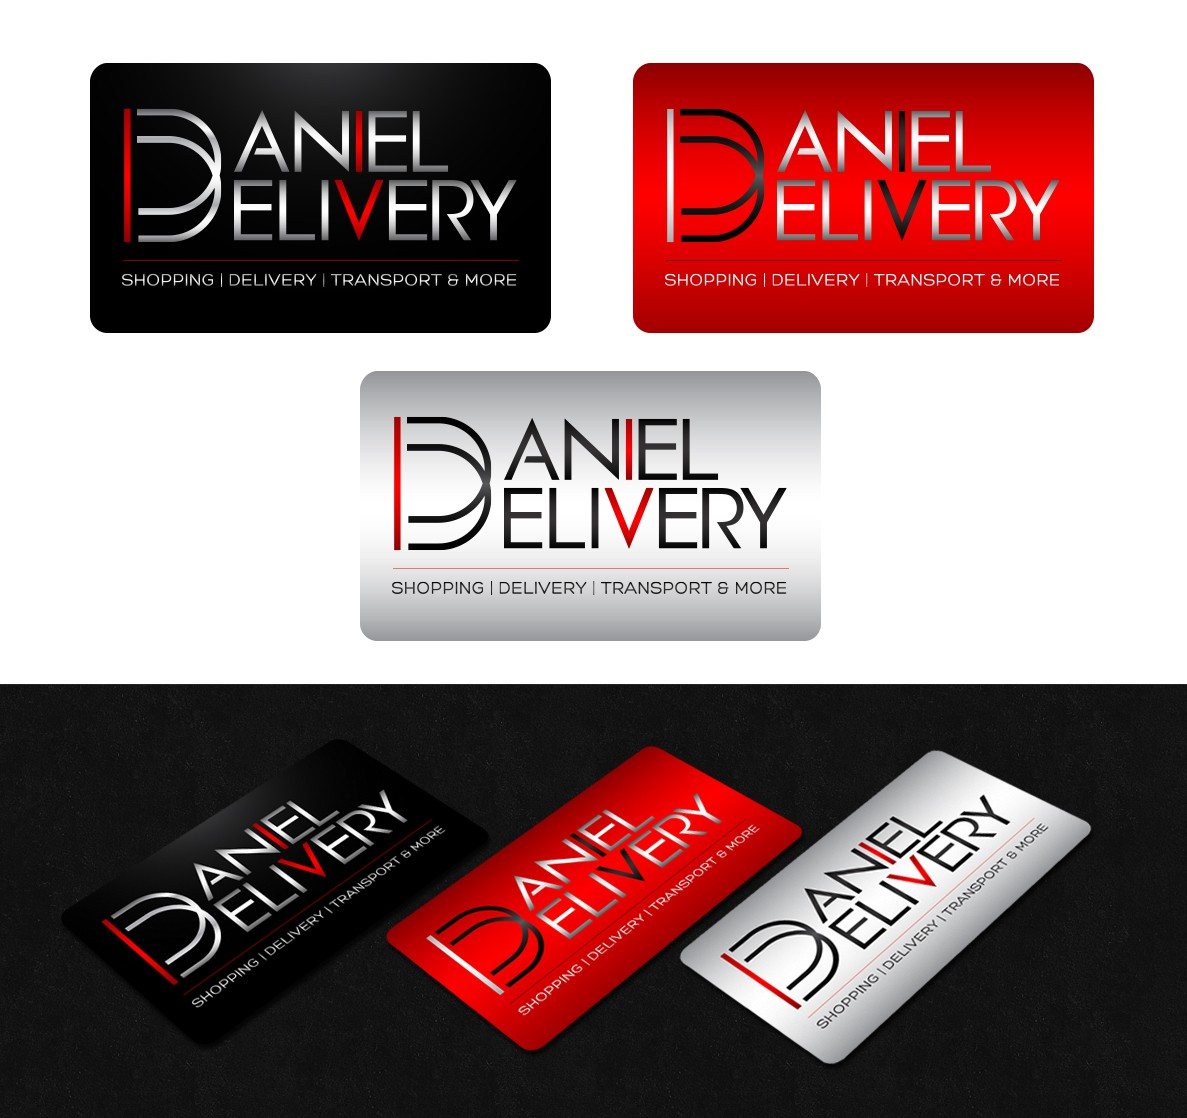 DANIEL DELIVERY needs LOGO and Business Card! Design Concept of LOGO provided!